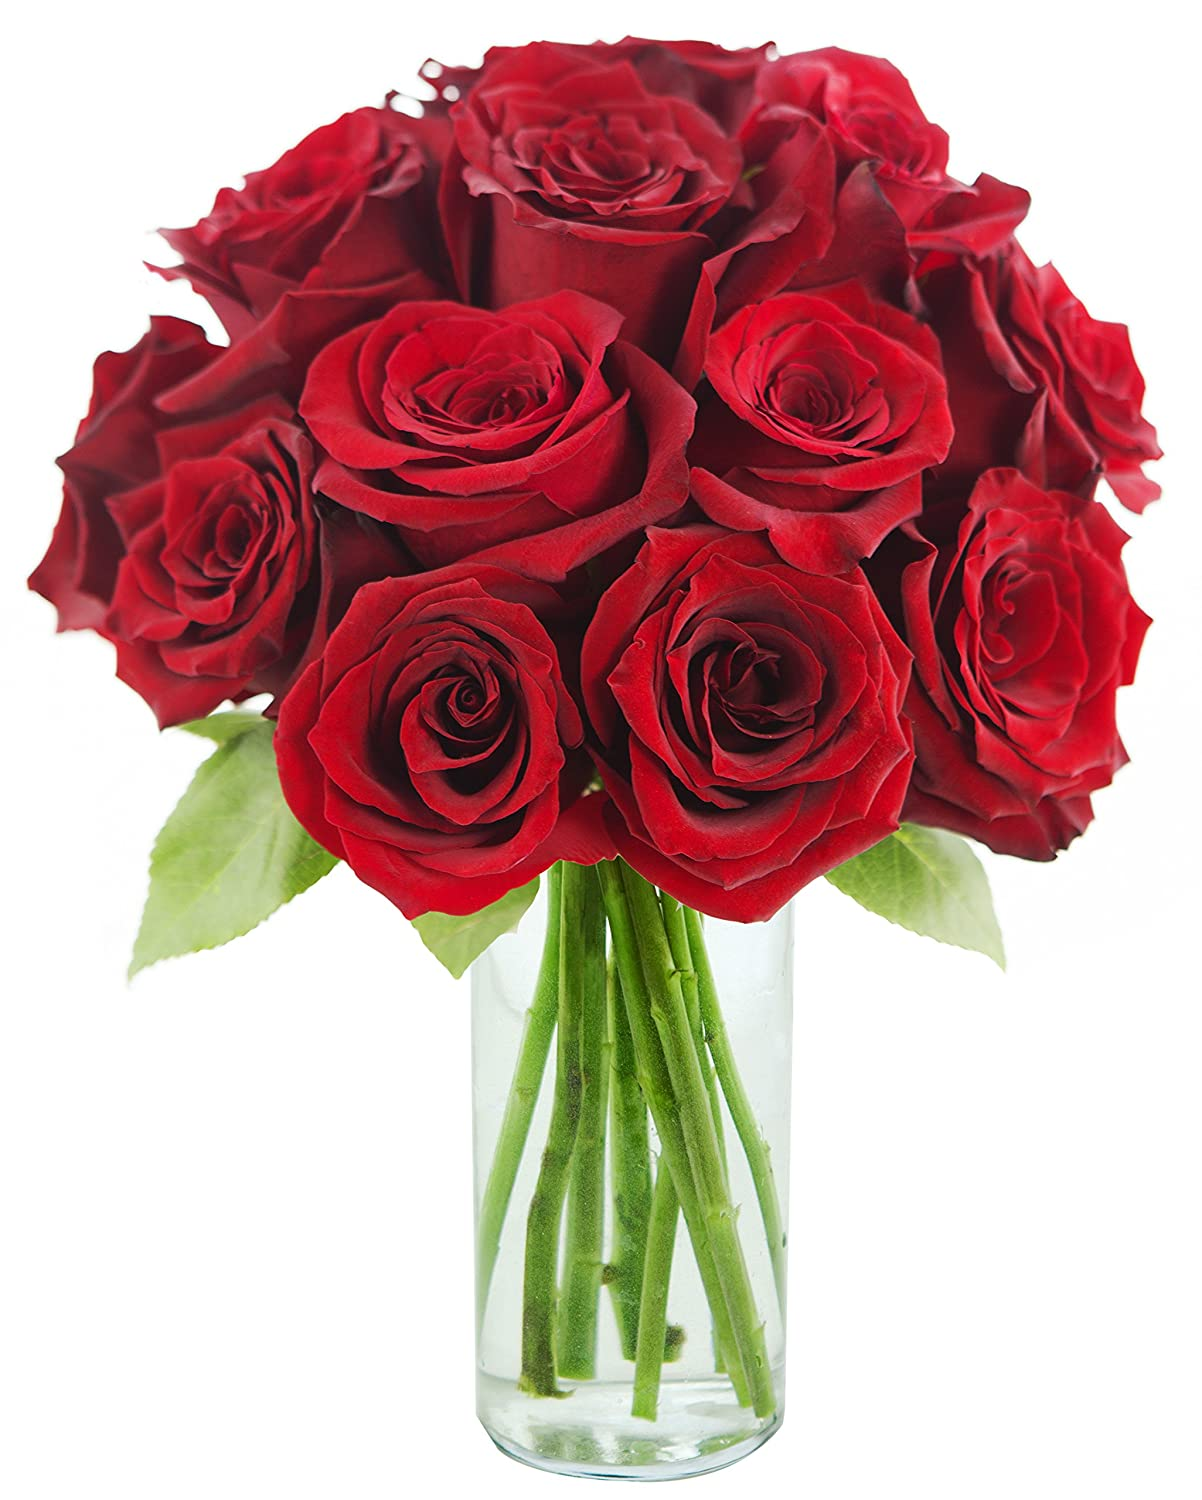 amazoncom kabloom romantic red rose bouquet 12 fresh cut red roses long stemmed with vase grocery gourmet food - Red Garden Rose Bouquet